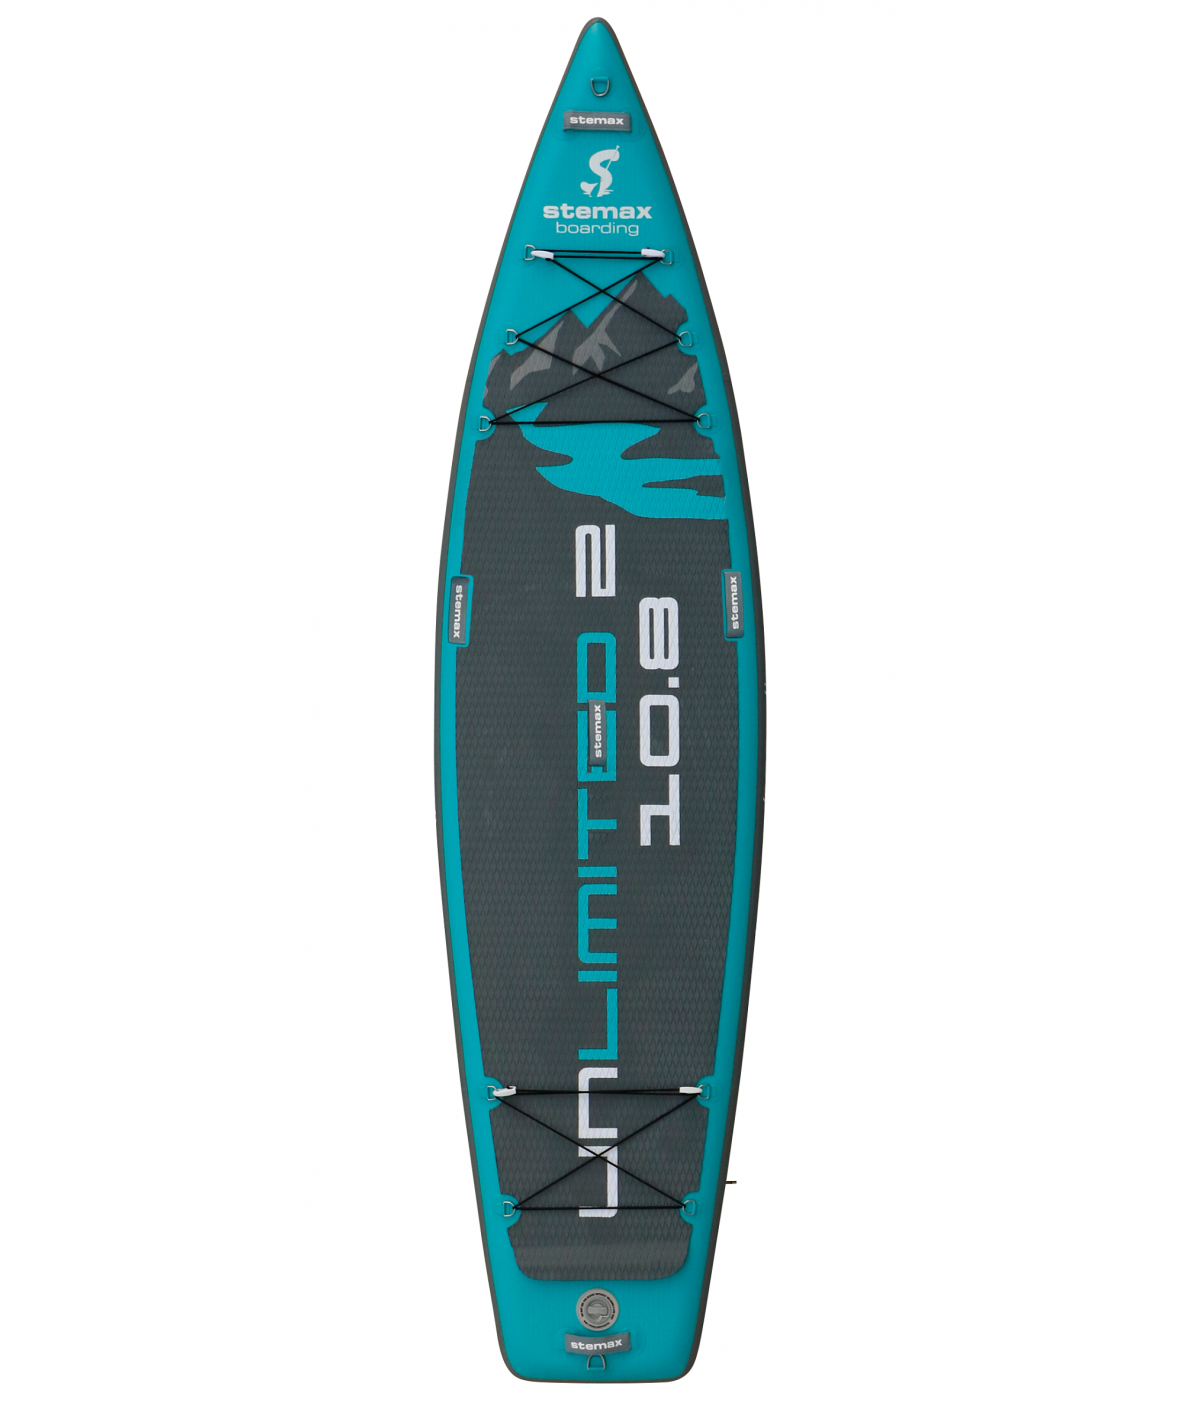 Stemax Unlimited 10'8 SUP